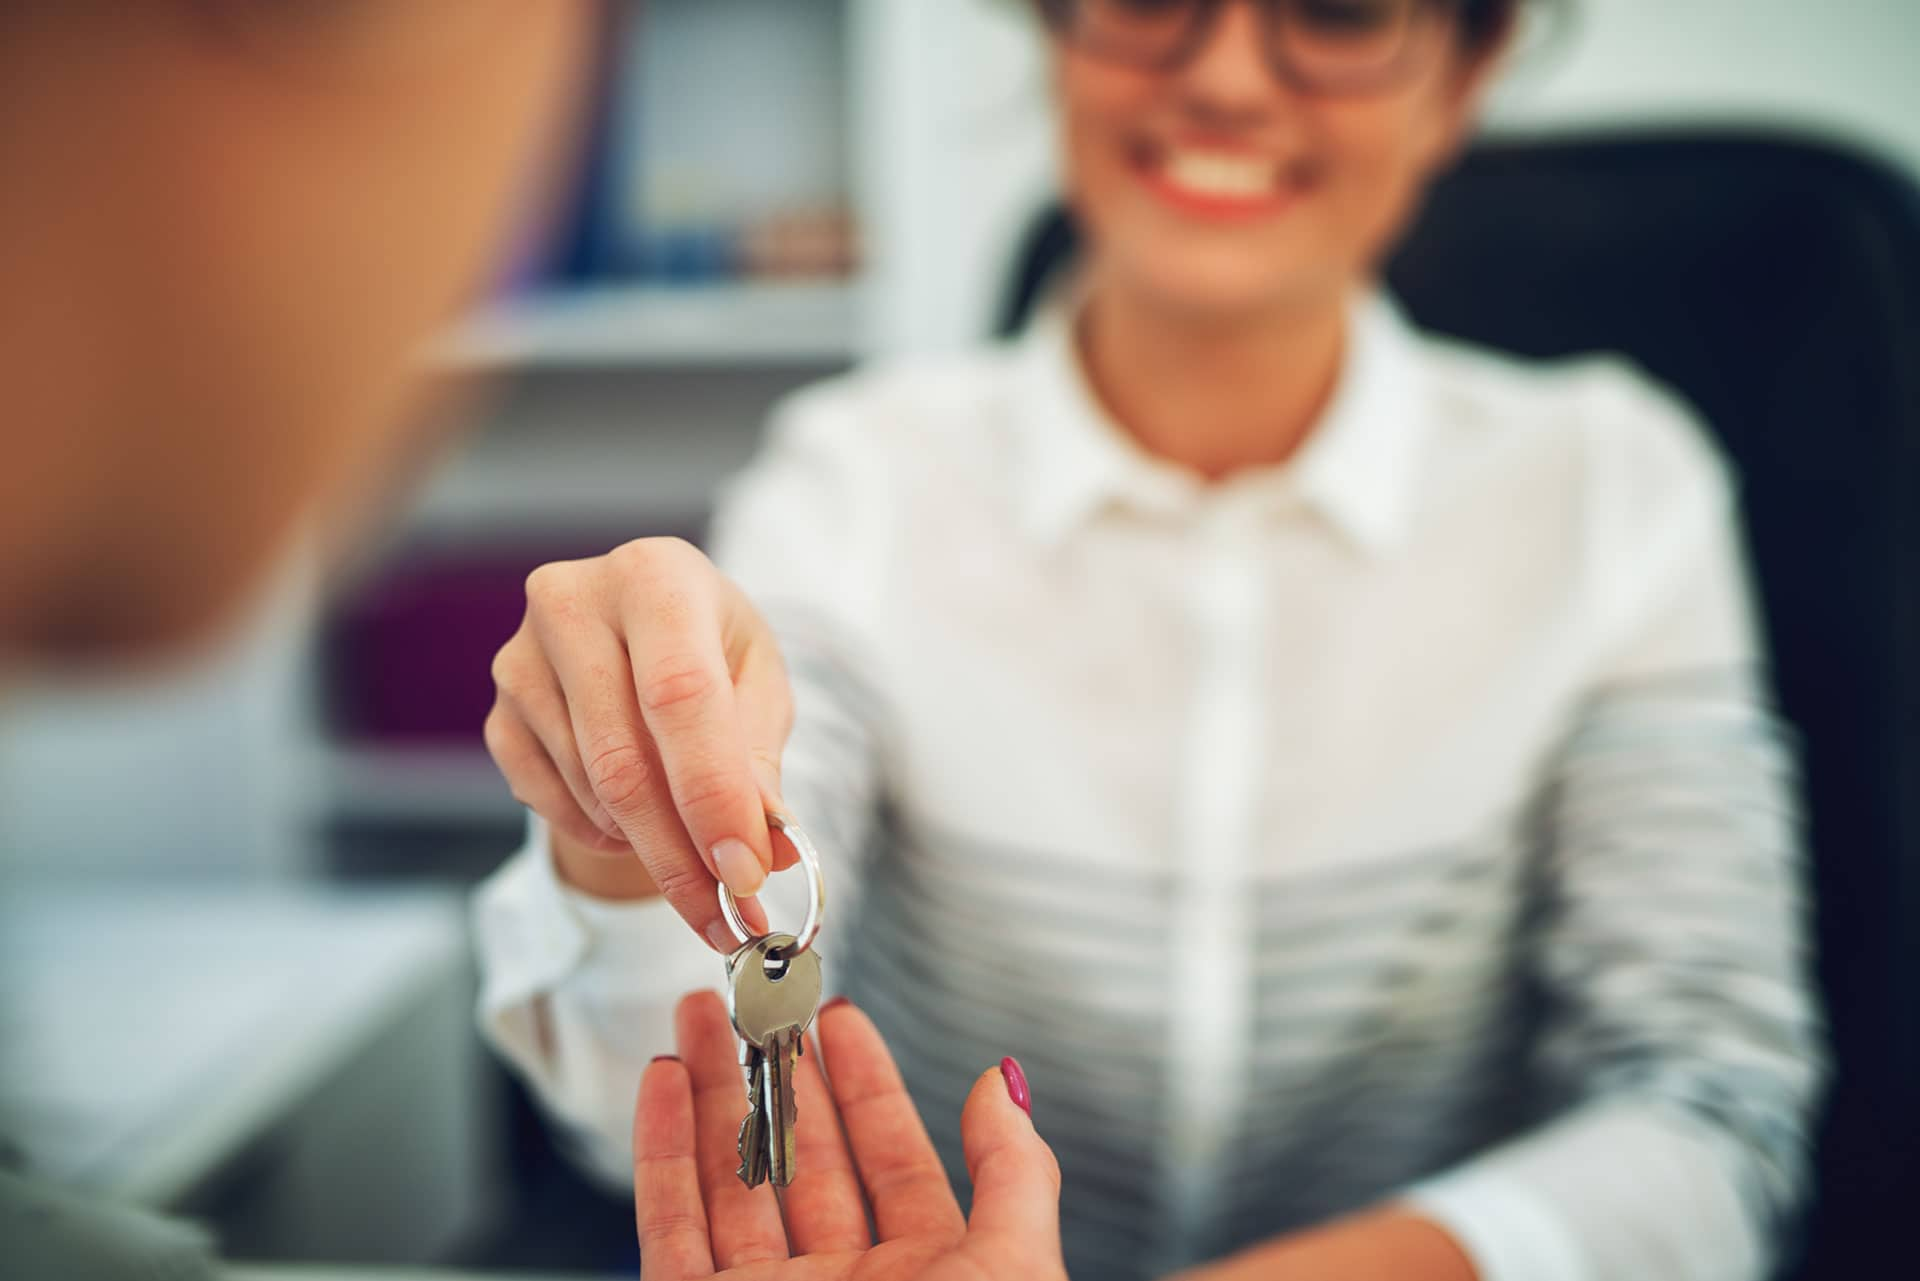 Close up of a young woman in a white shirt and glasses handing keys to an outstretched hand